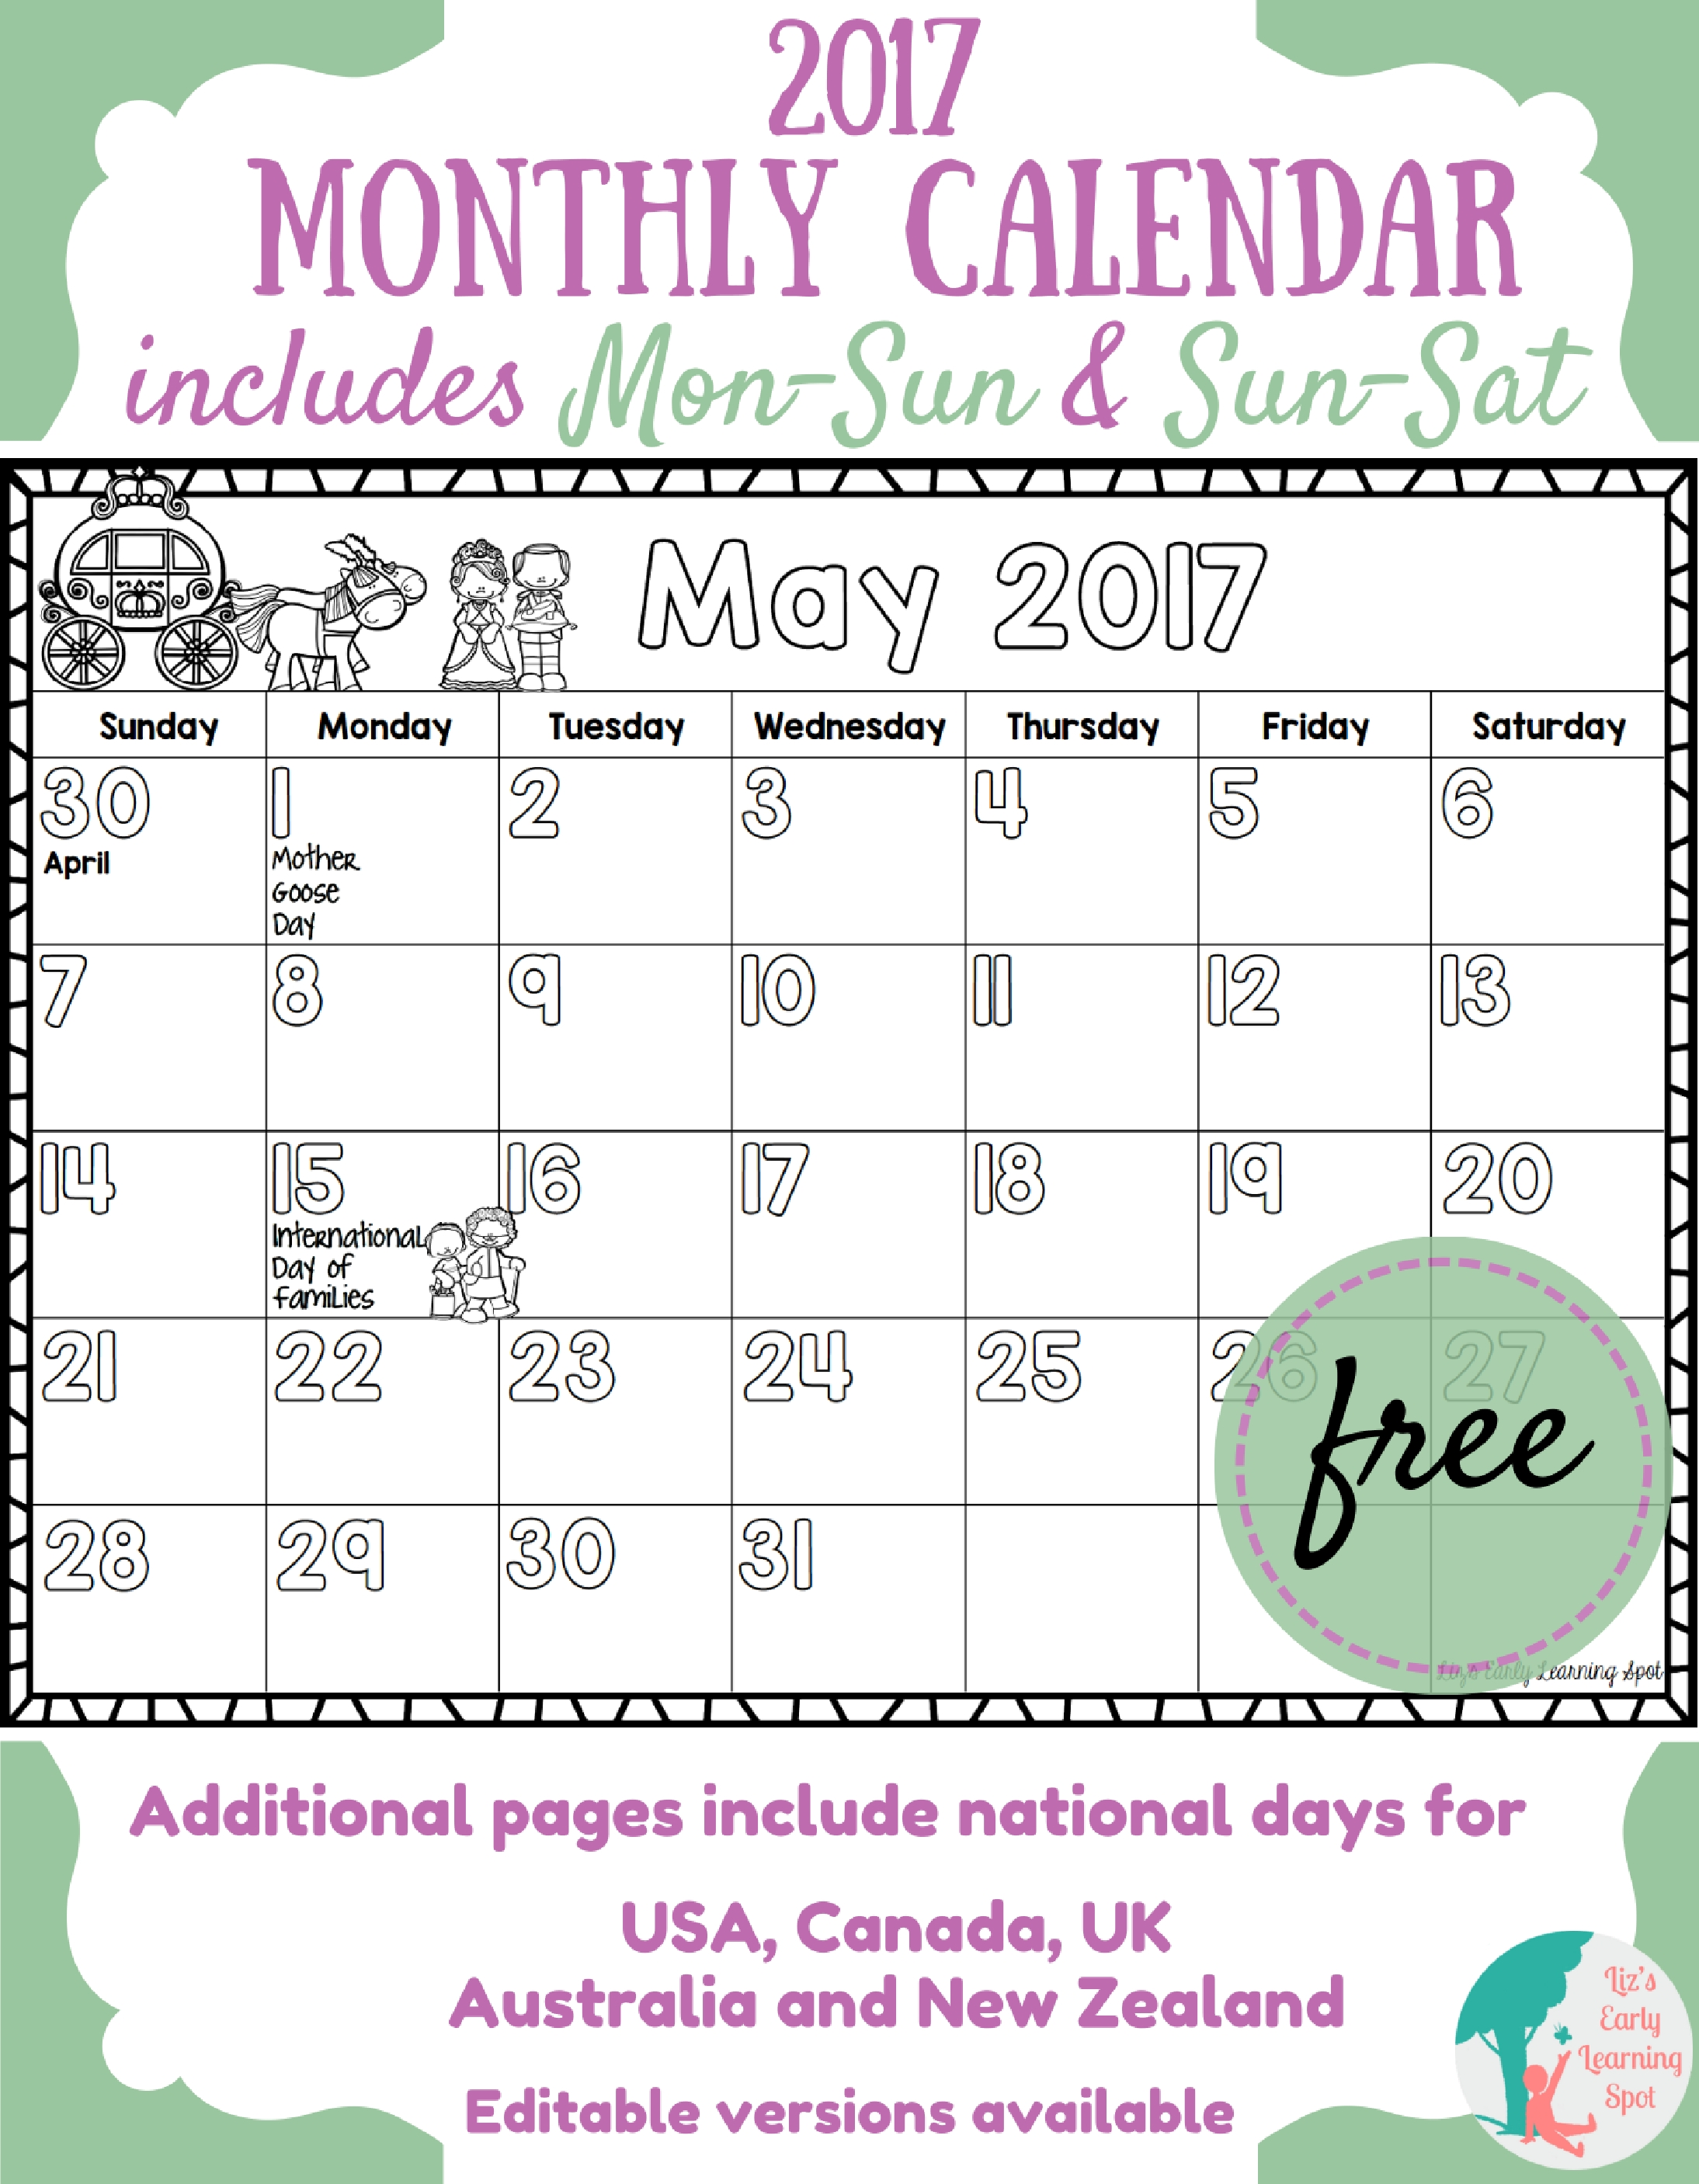 Quarterly Calendar Ideas : Free monthly calendar for kids liz s early learning